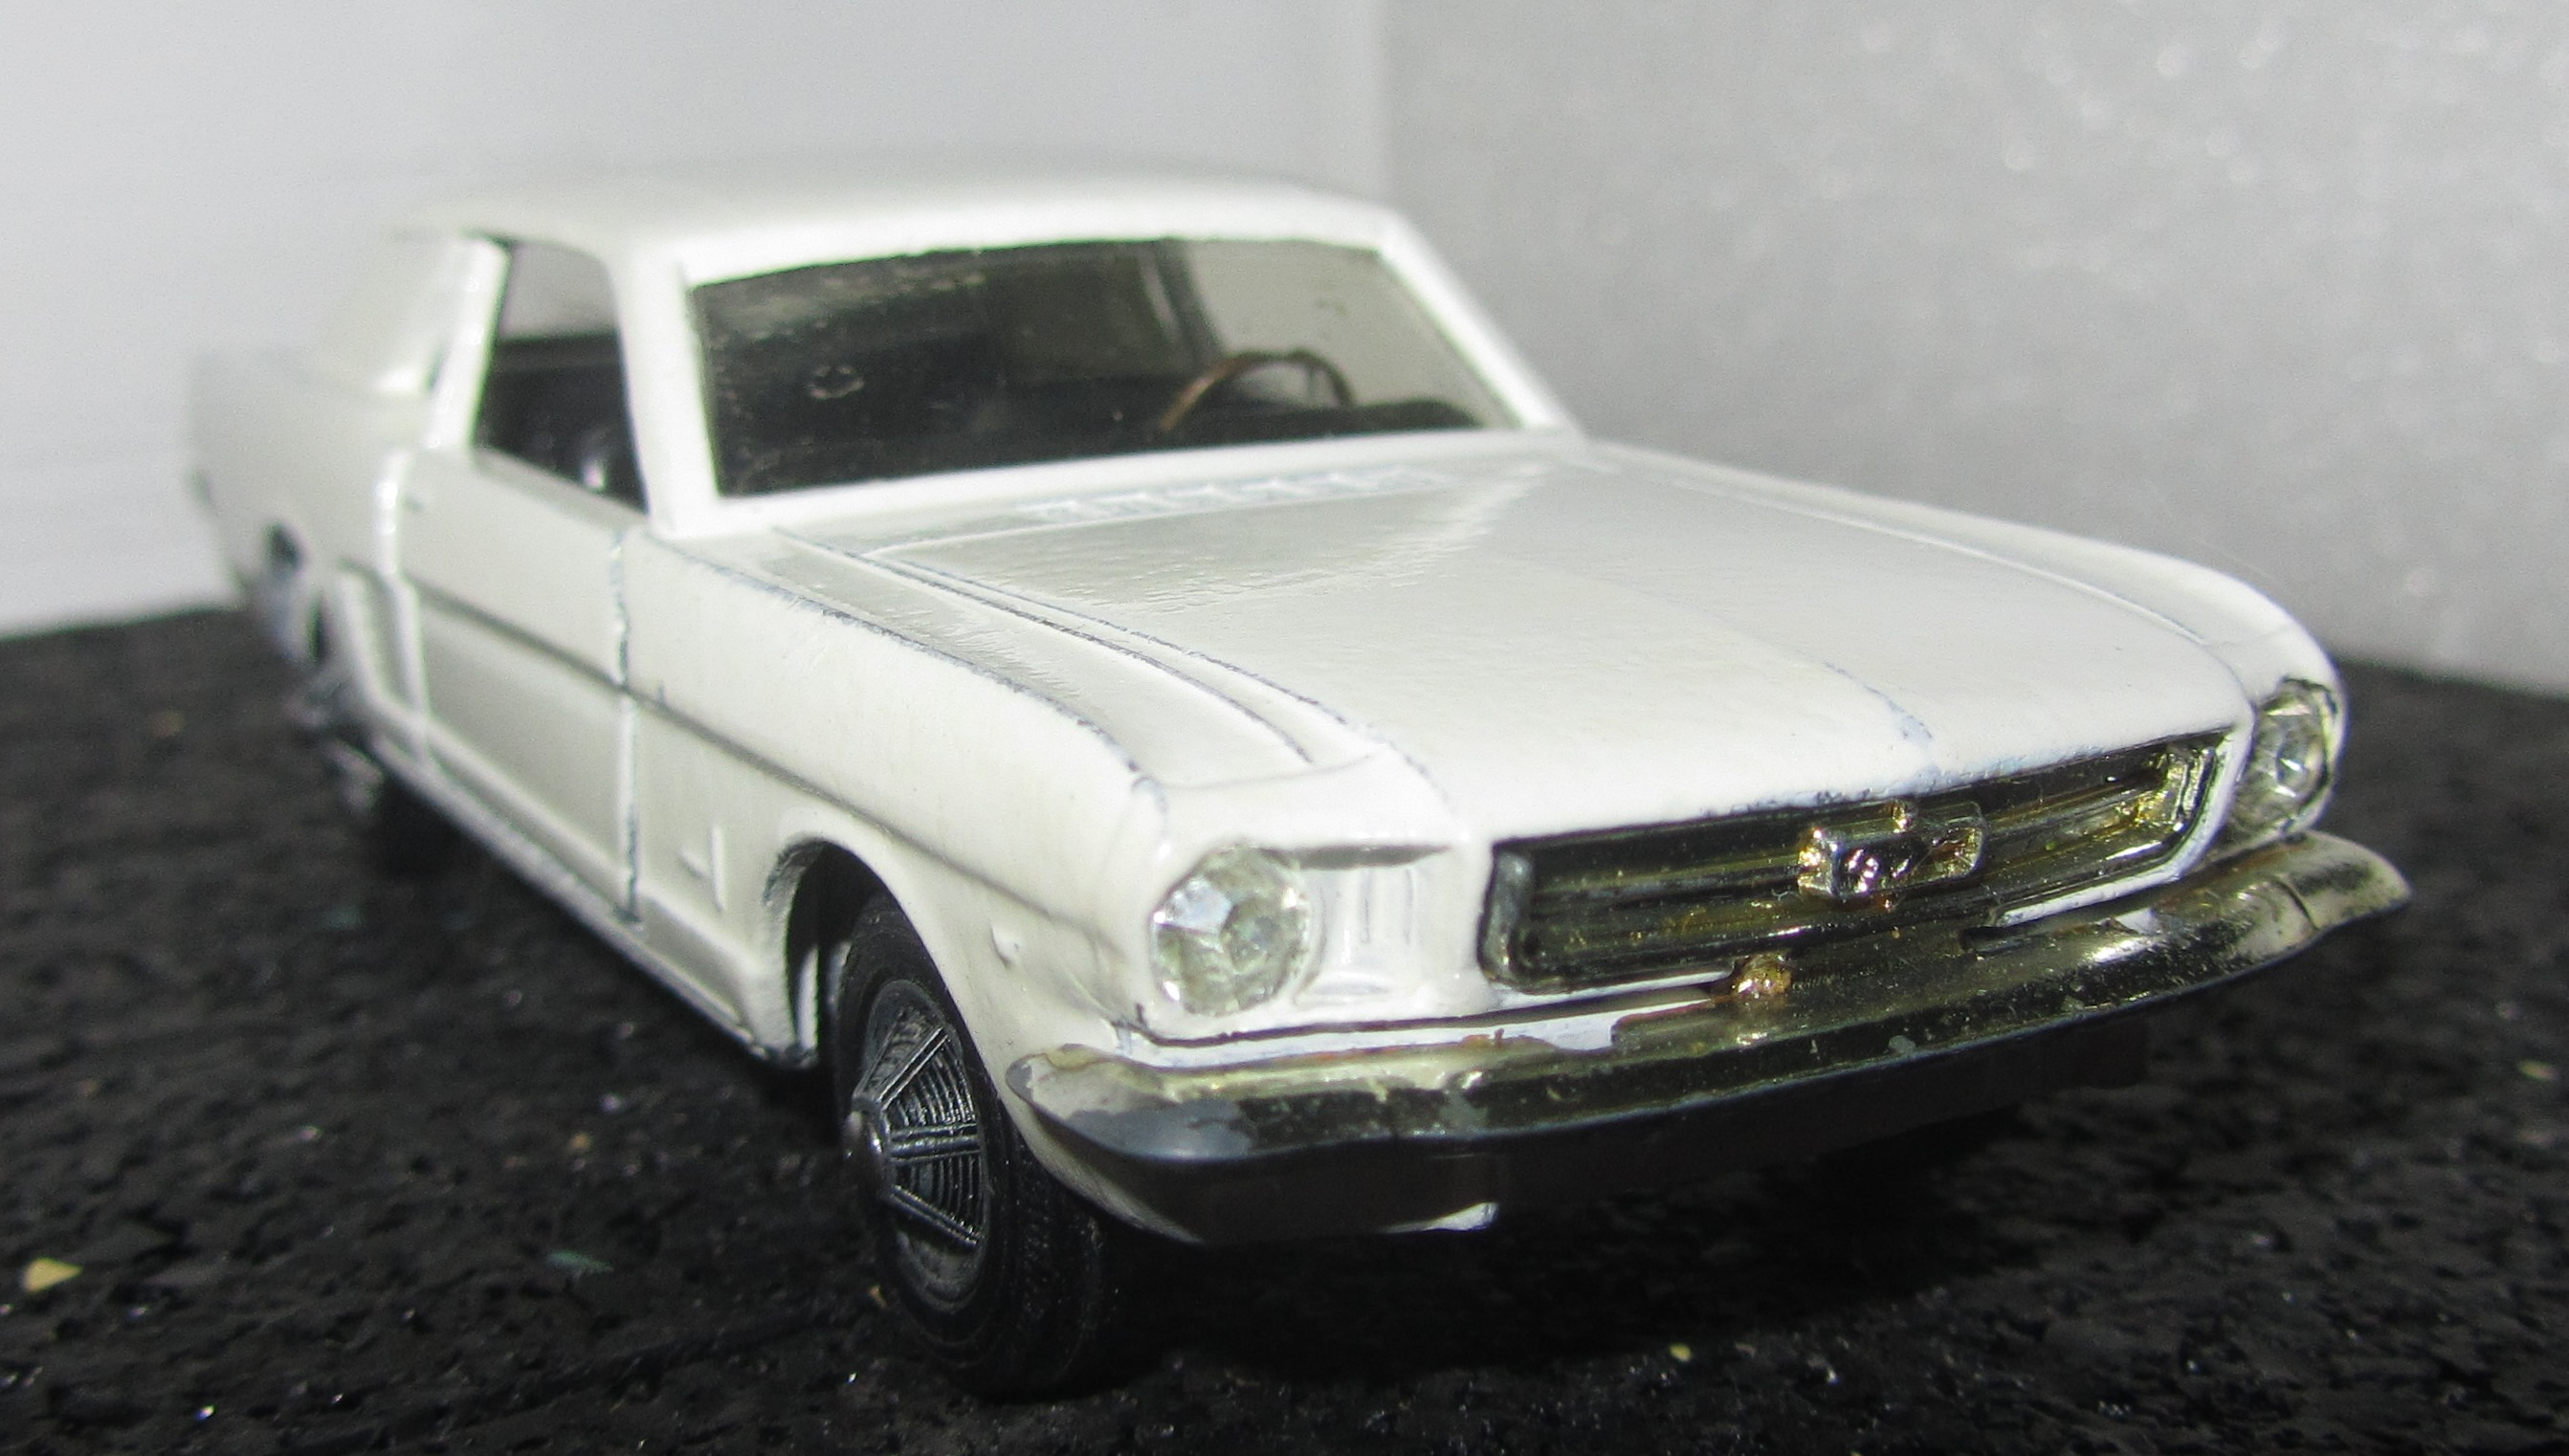 Solido n° 147 bis - Ford Mustang 181218120559271026